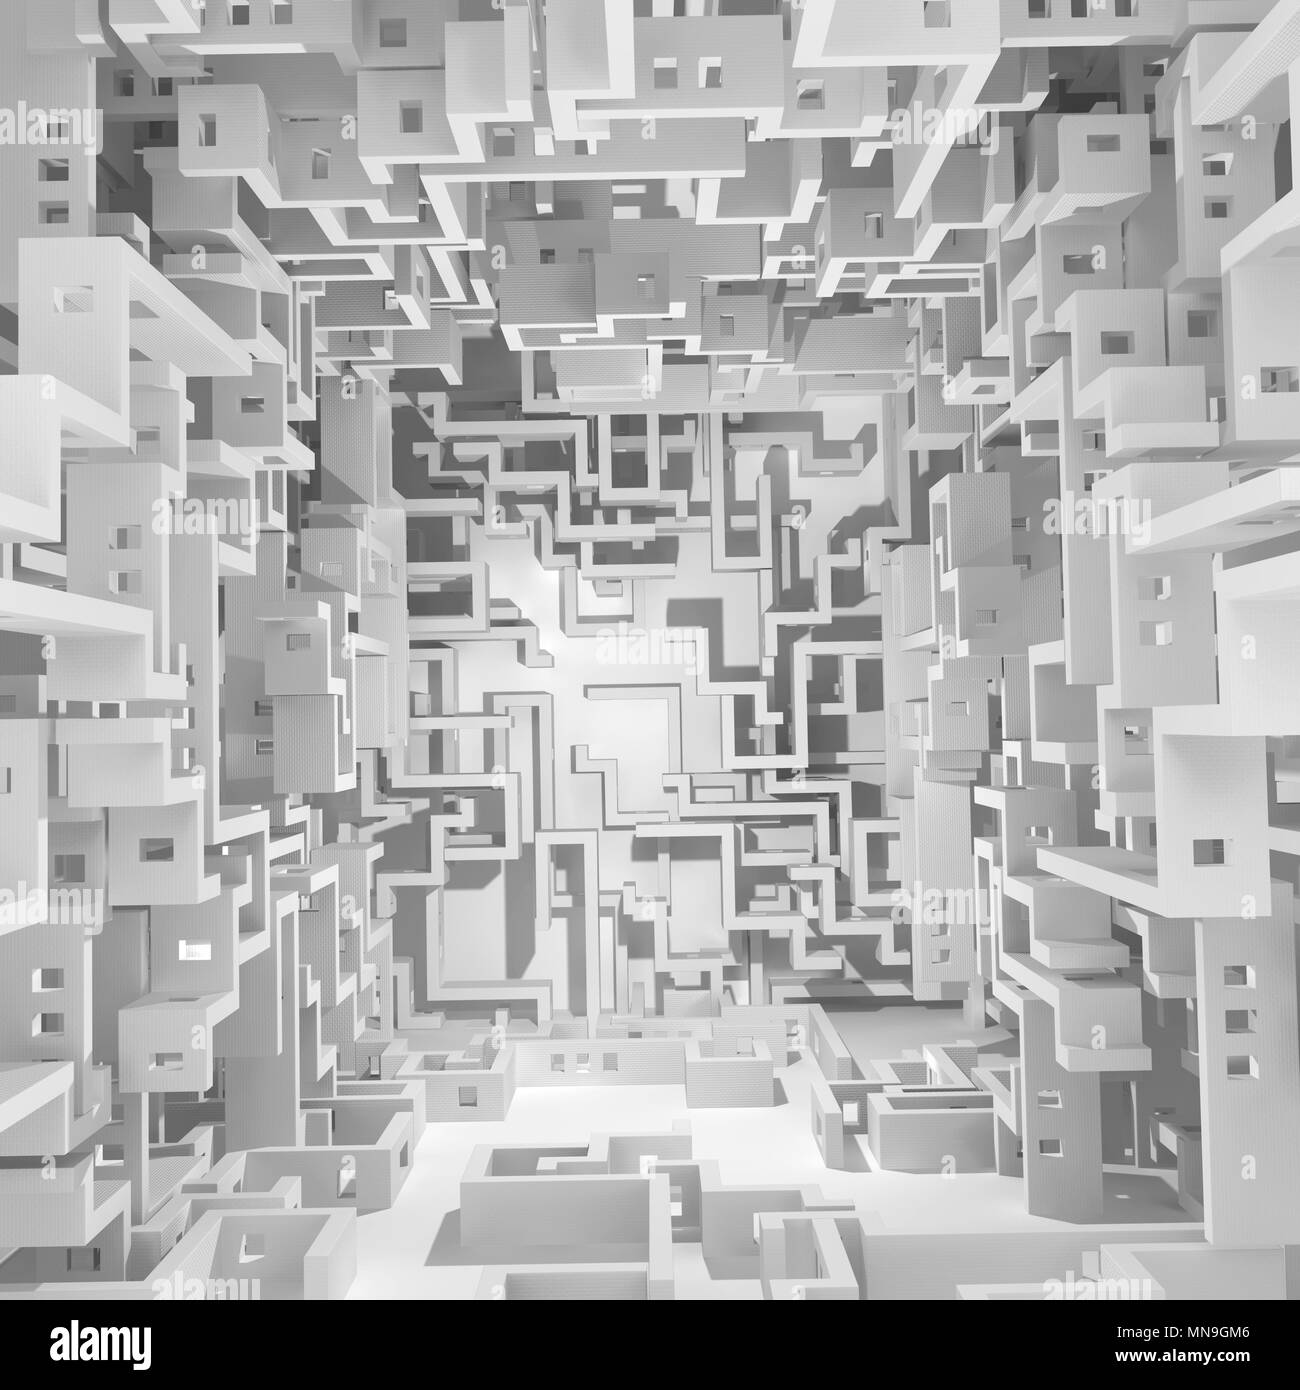 White wall labyrinth maze surreal abstract, 3d illustration, horizontal - Stock Image